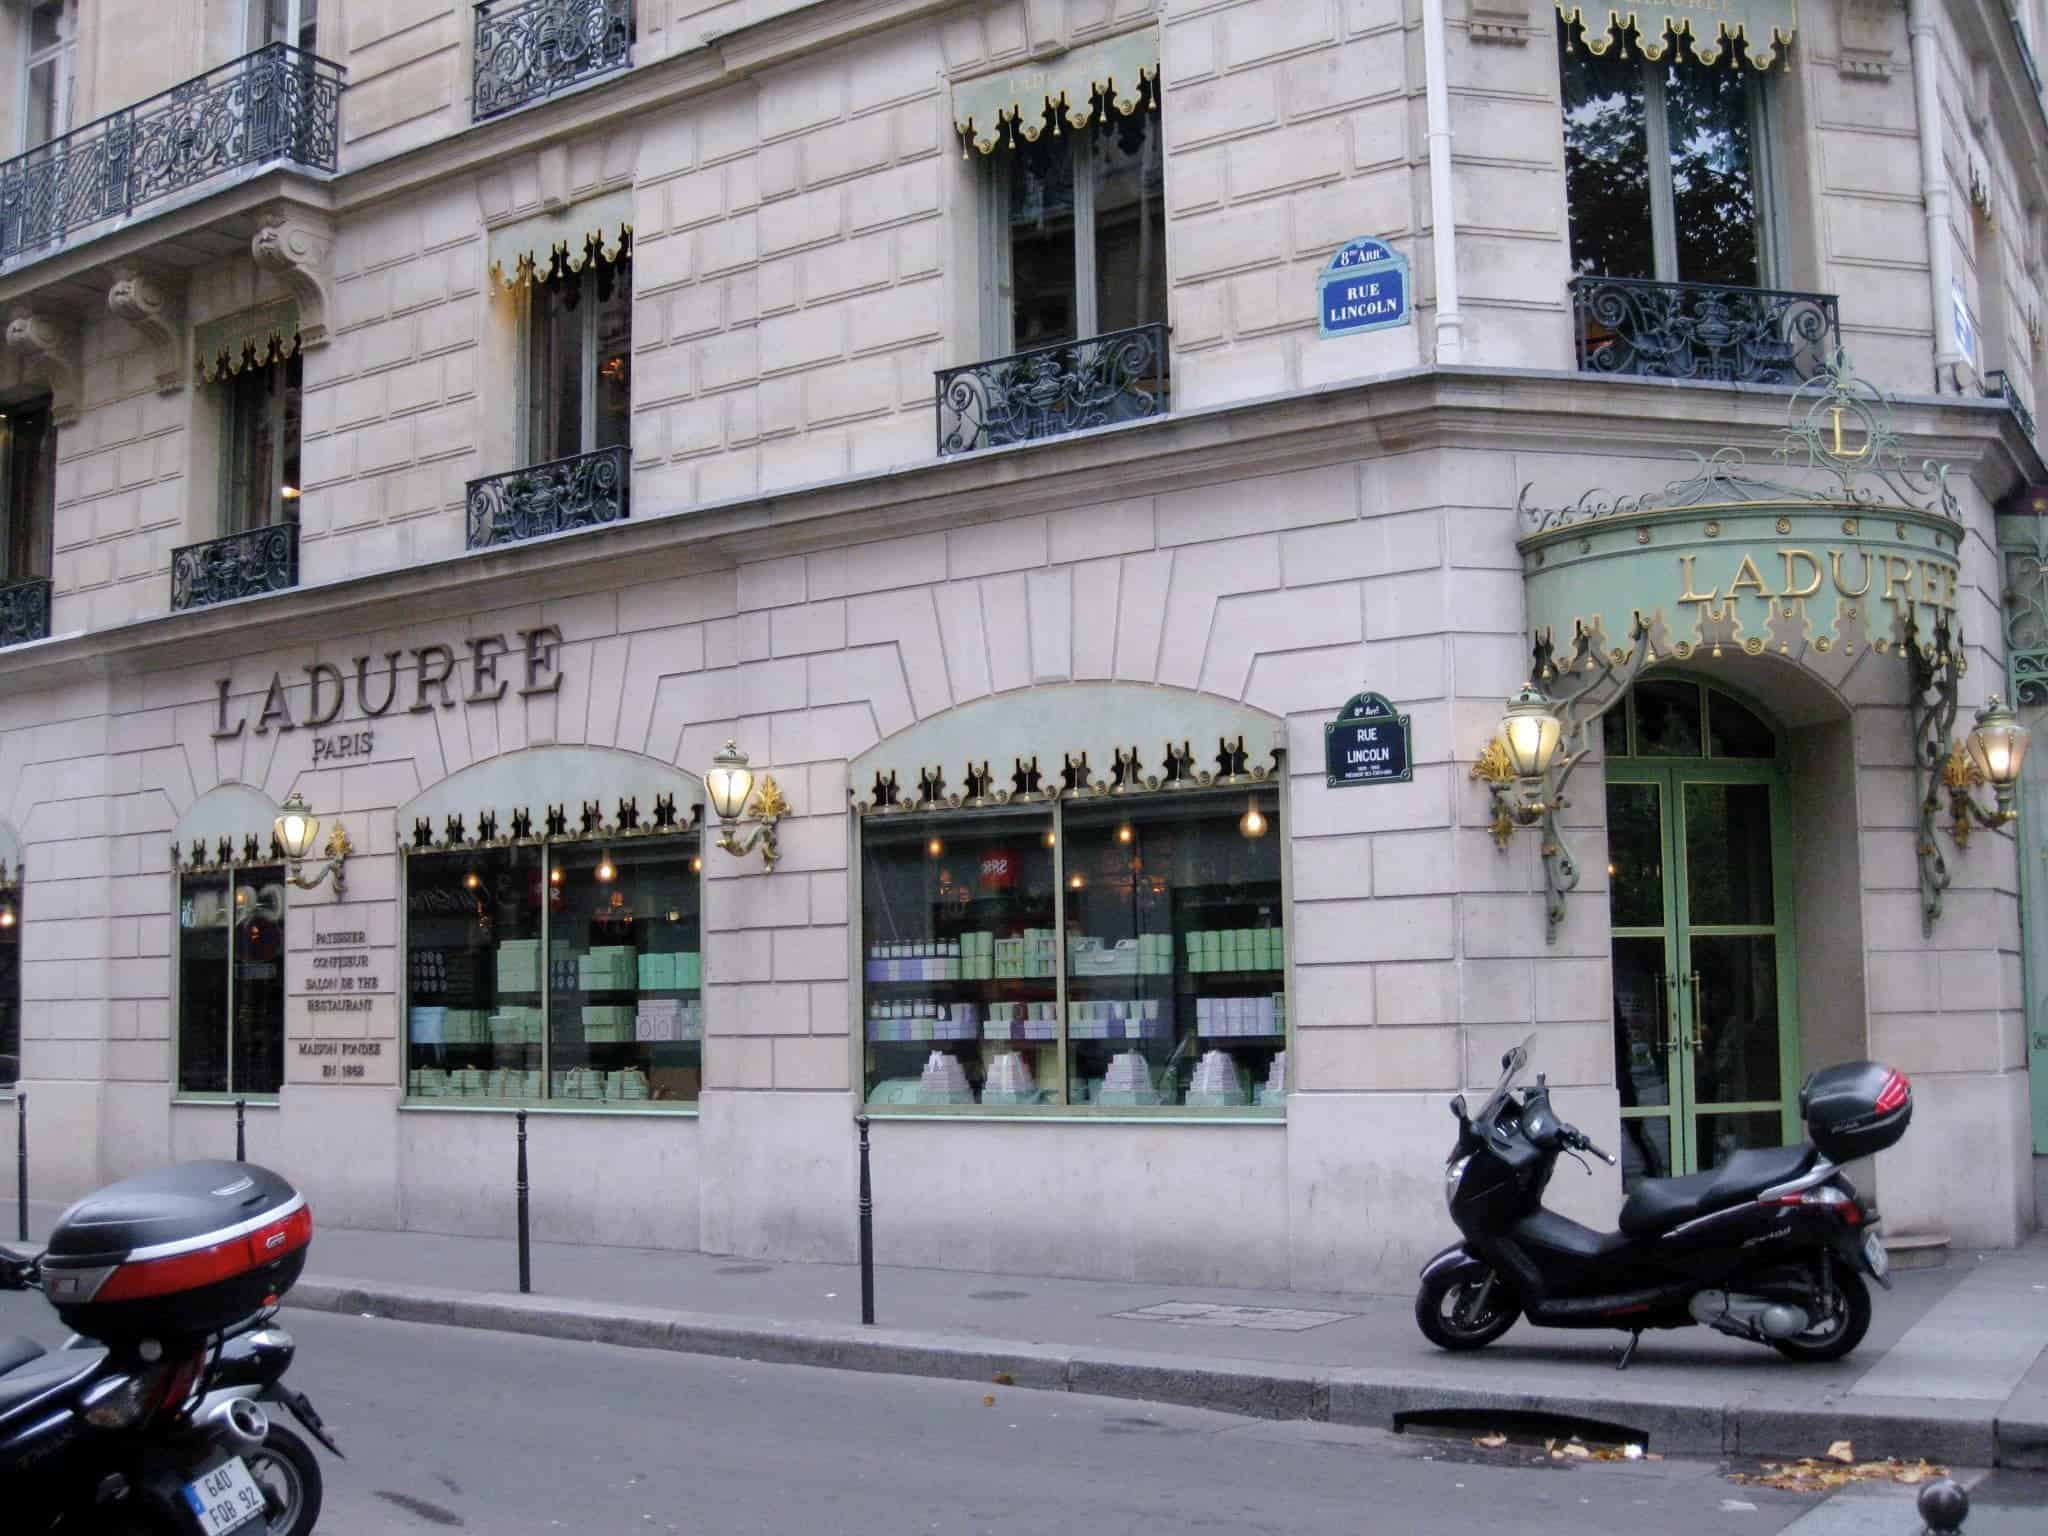 Paris Itinerary: Laduree on the Champs-Elysees